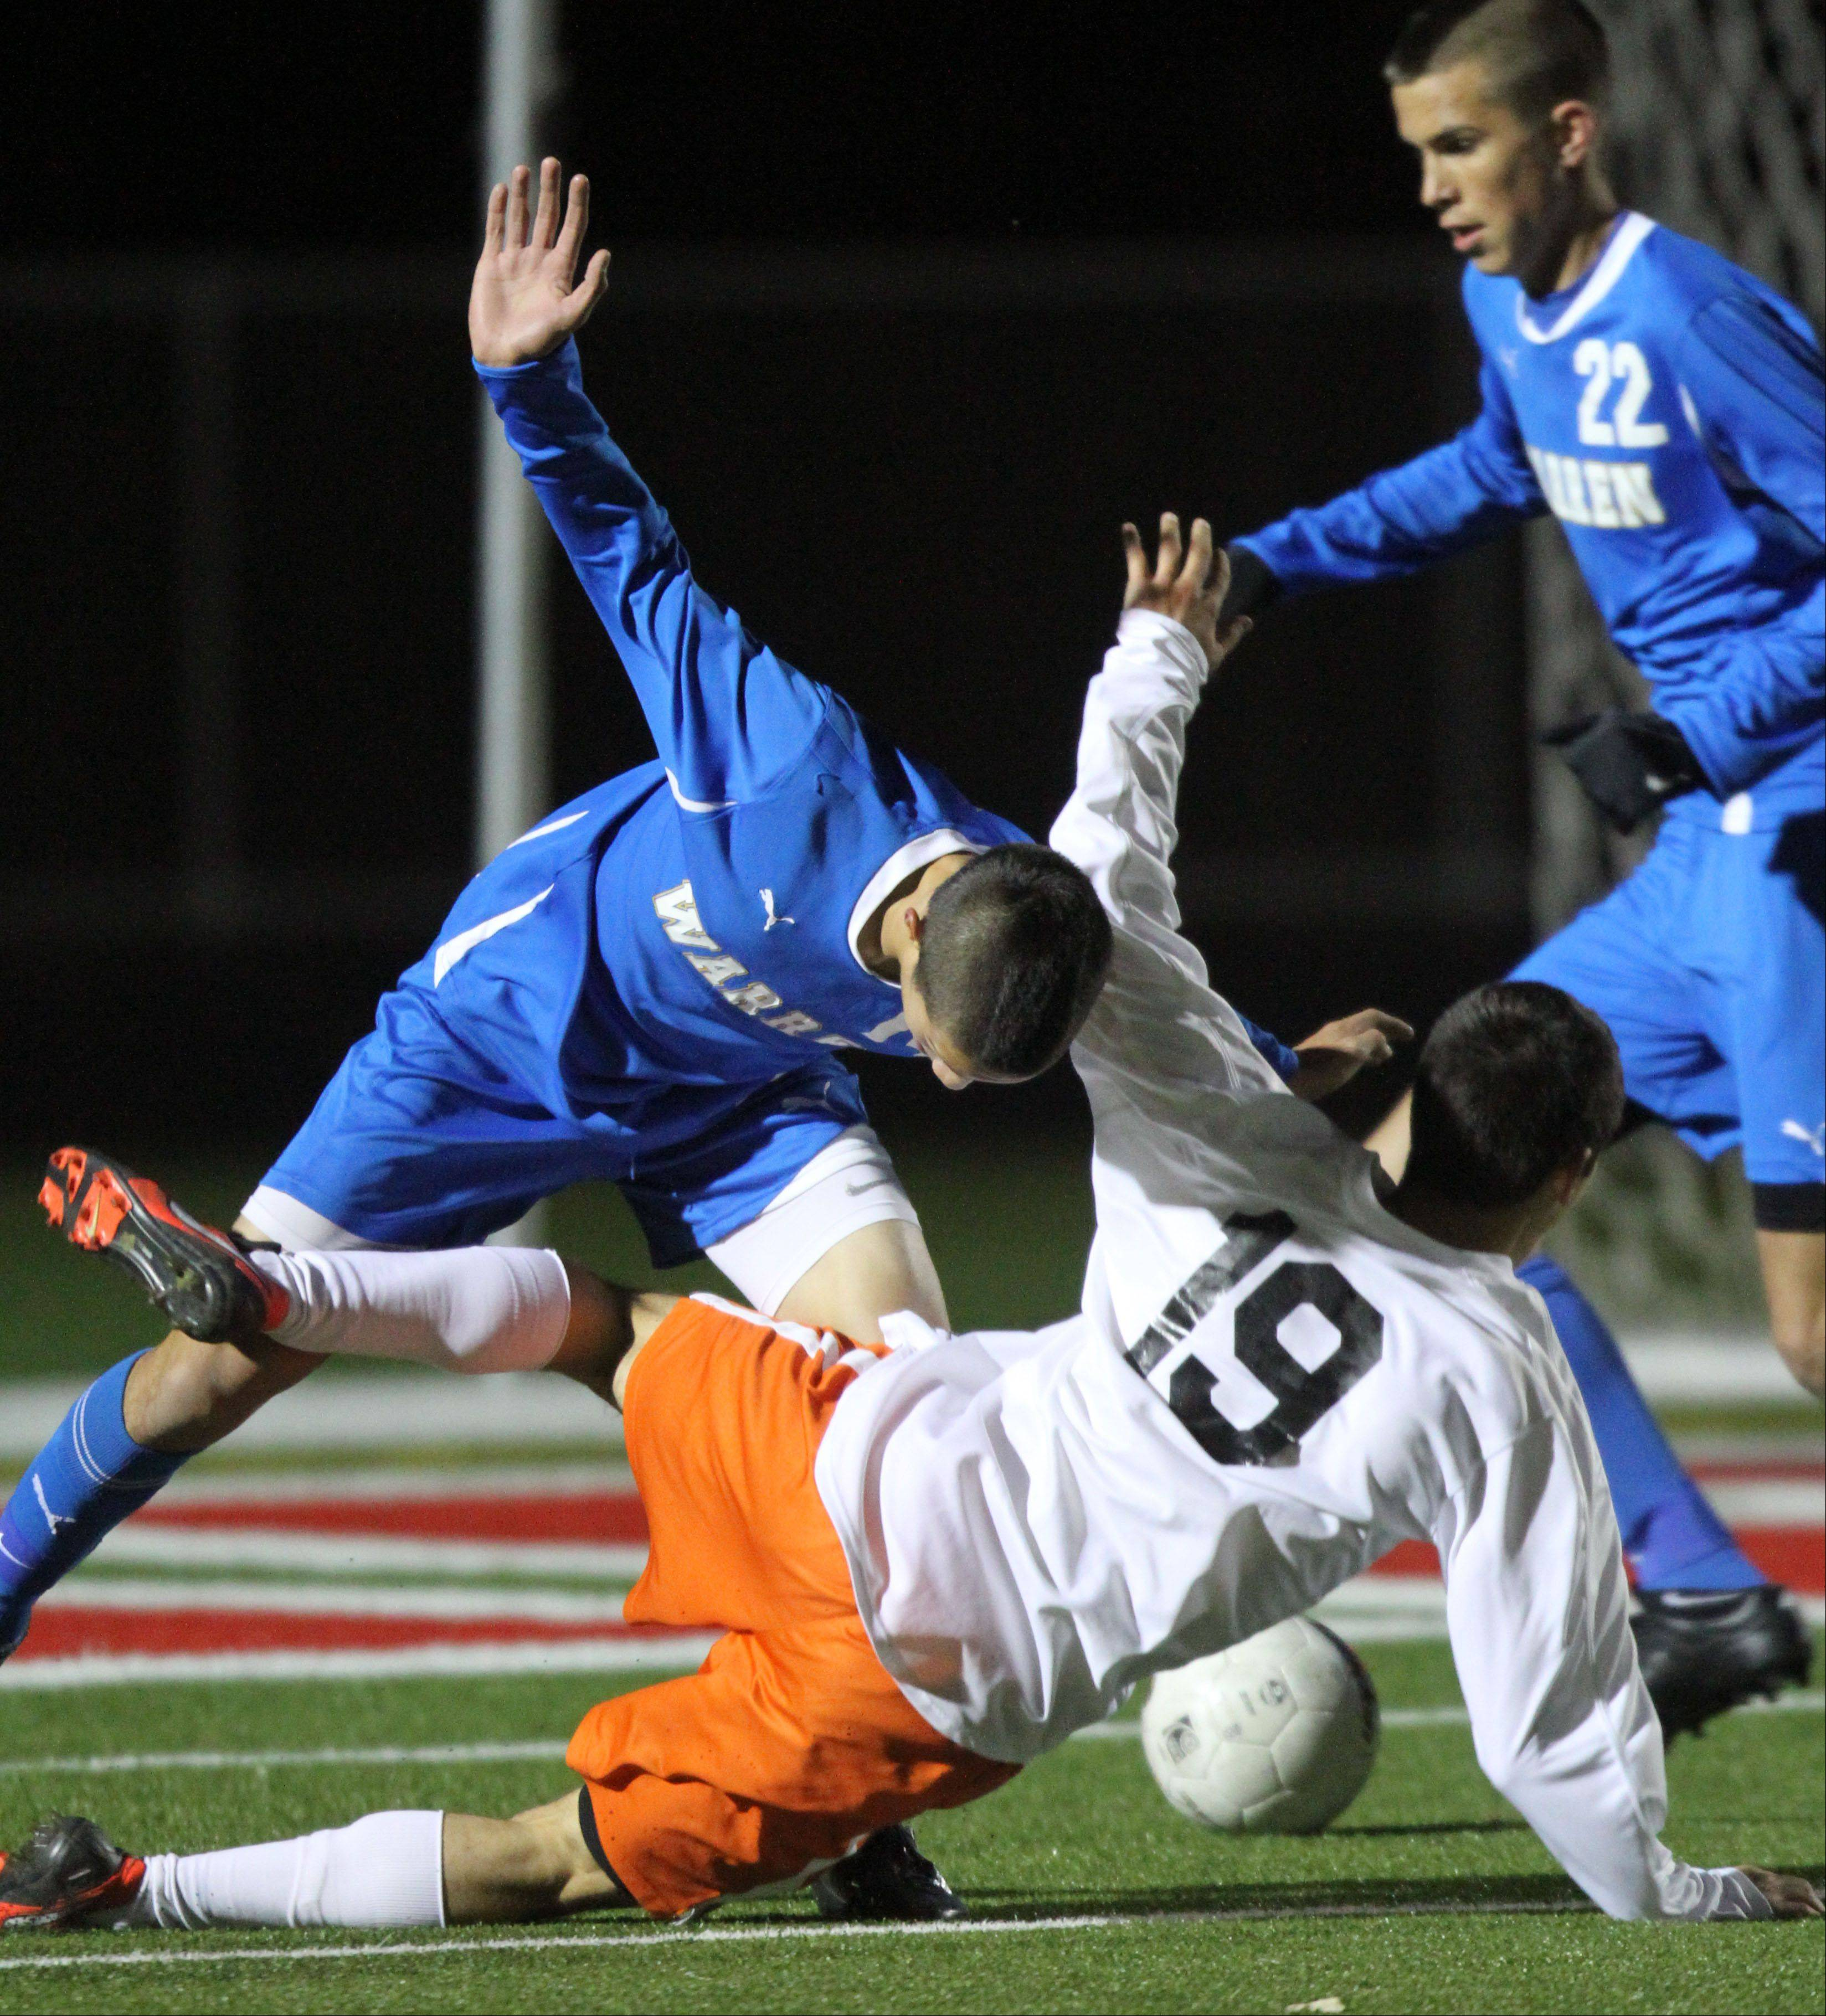 Warren's Nick Haas, left, and St. Charles East's Kevin Kurtz get tangled up during super sectional soccer action Tuesday night at Barrington High School.